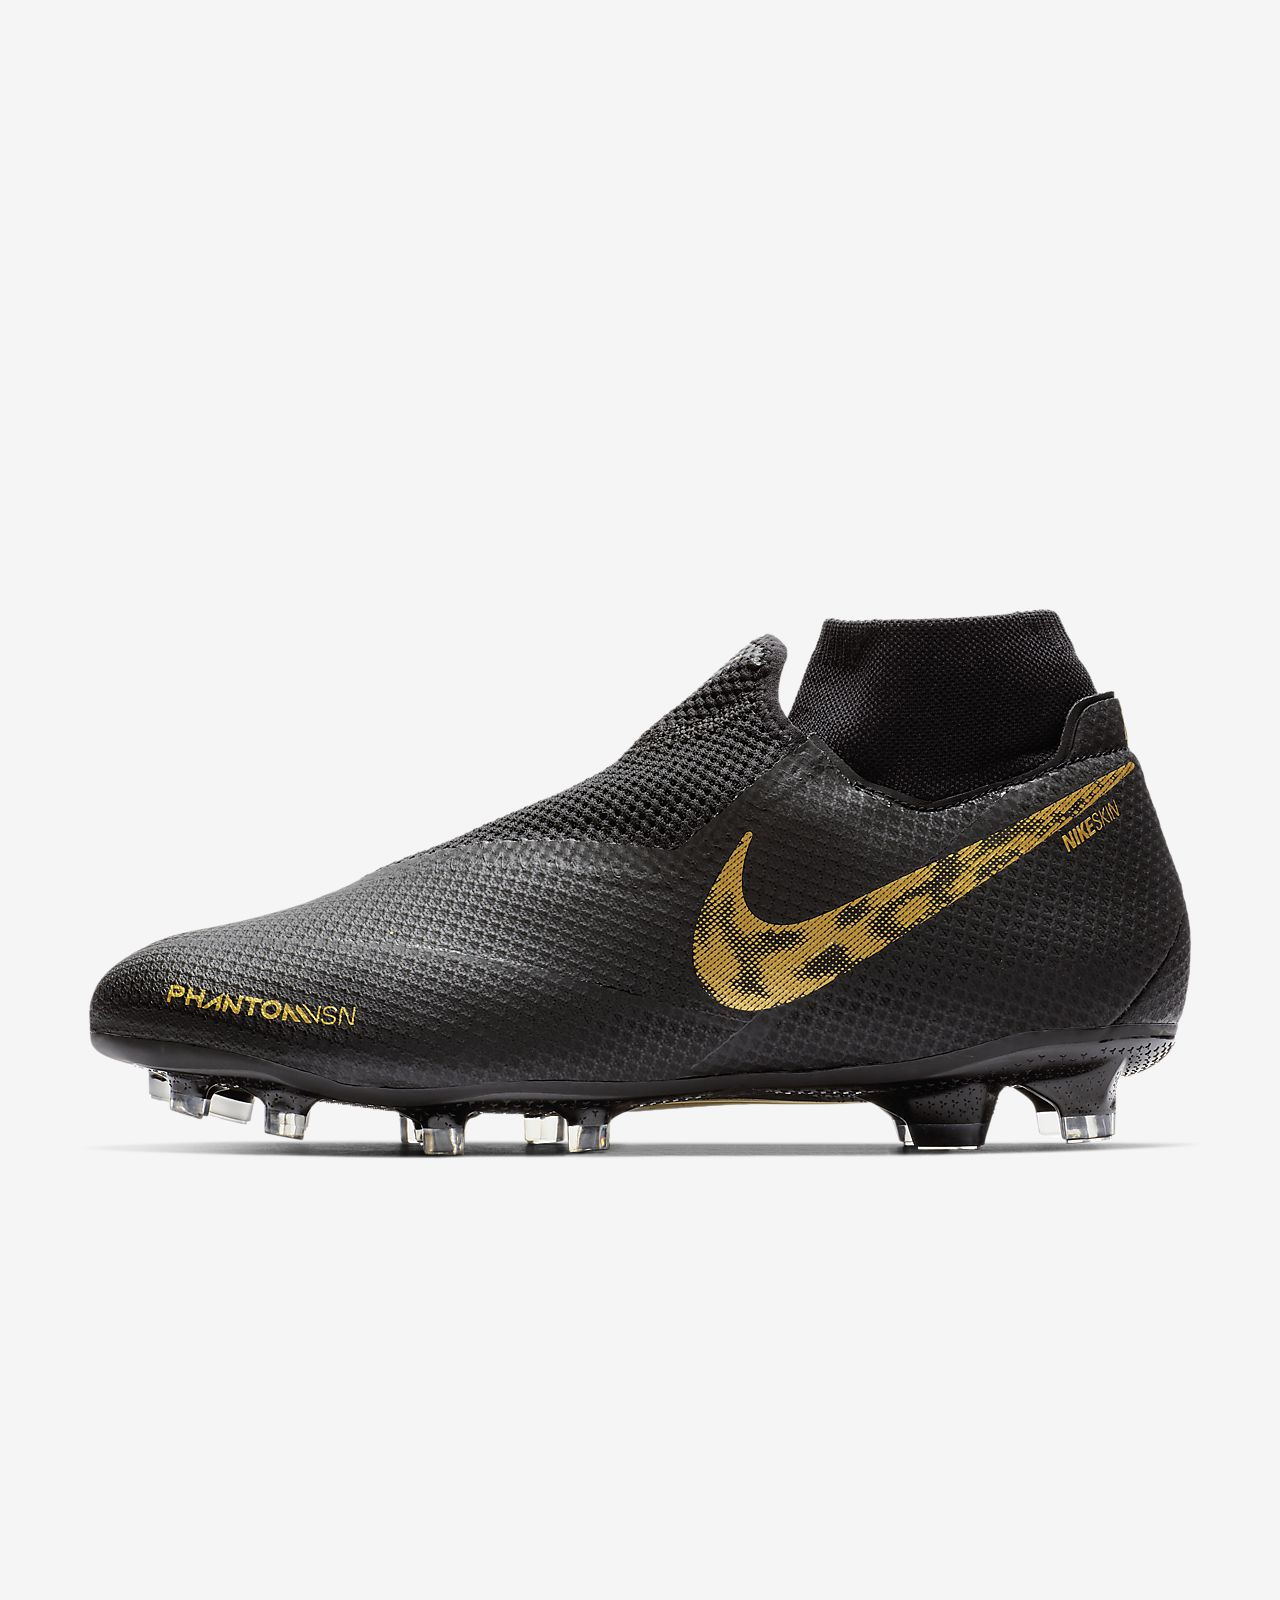 Nike Phantom Vision Pro Dynamic Fit FG Firm-Ground Soccer Cleat